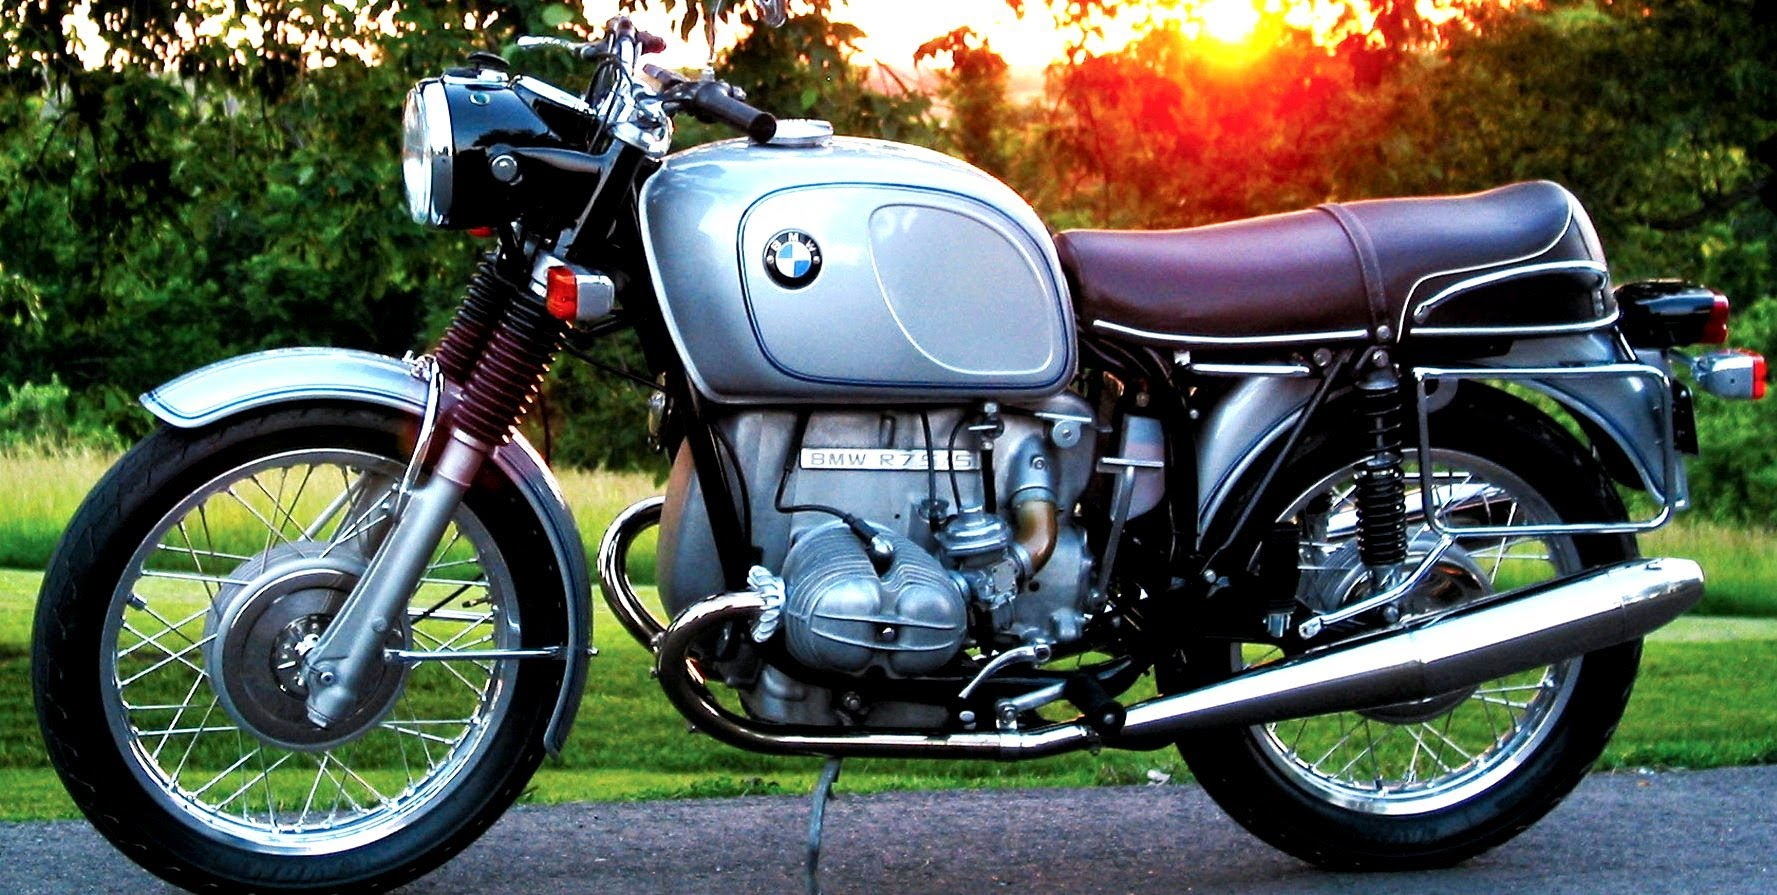 BMW R65 (reduced effect) 1988 images #77180